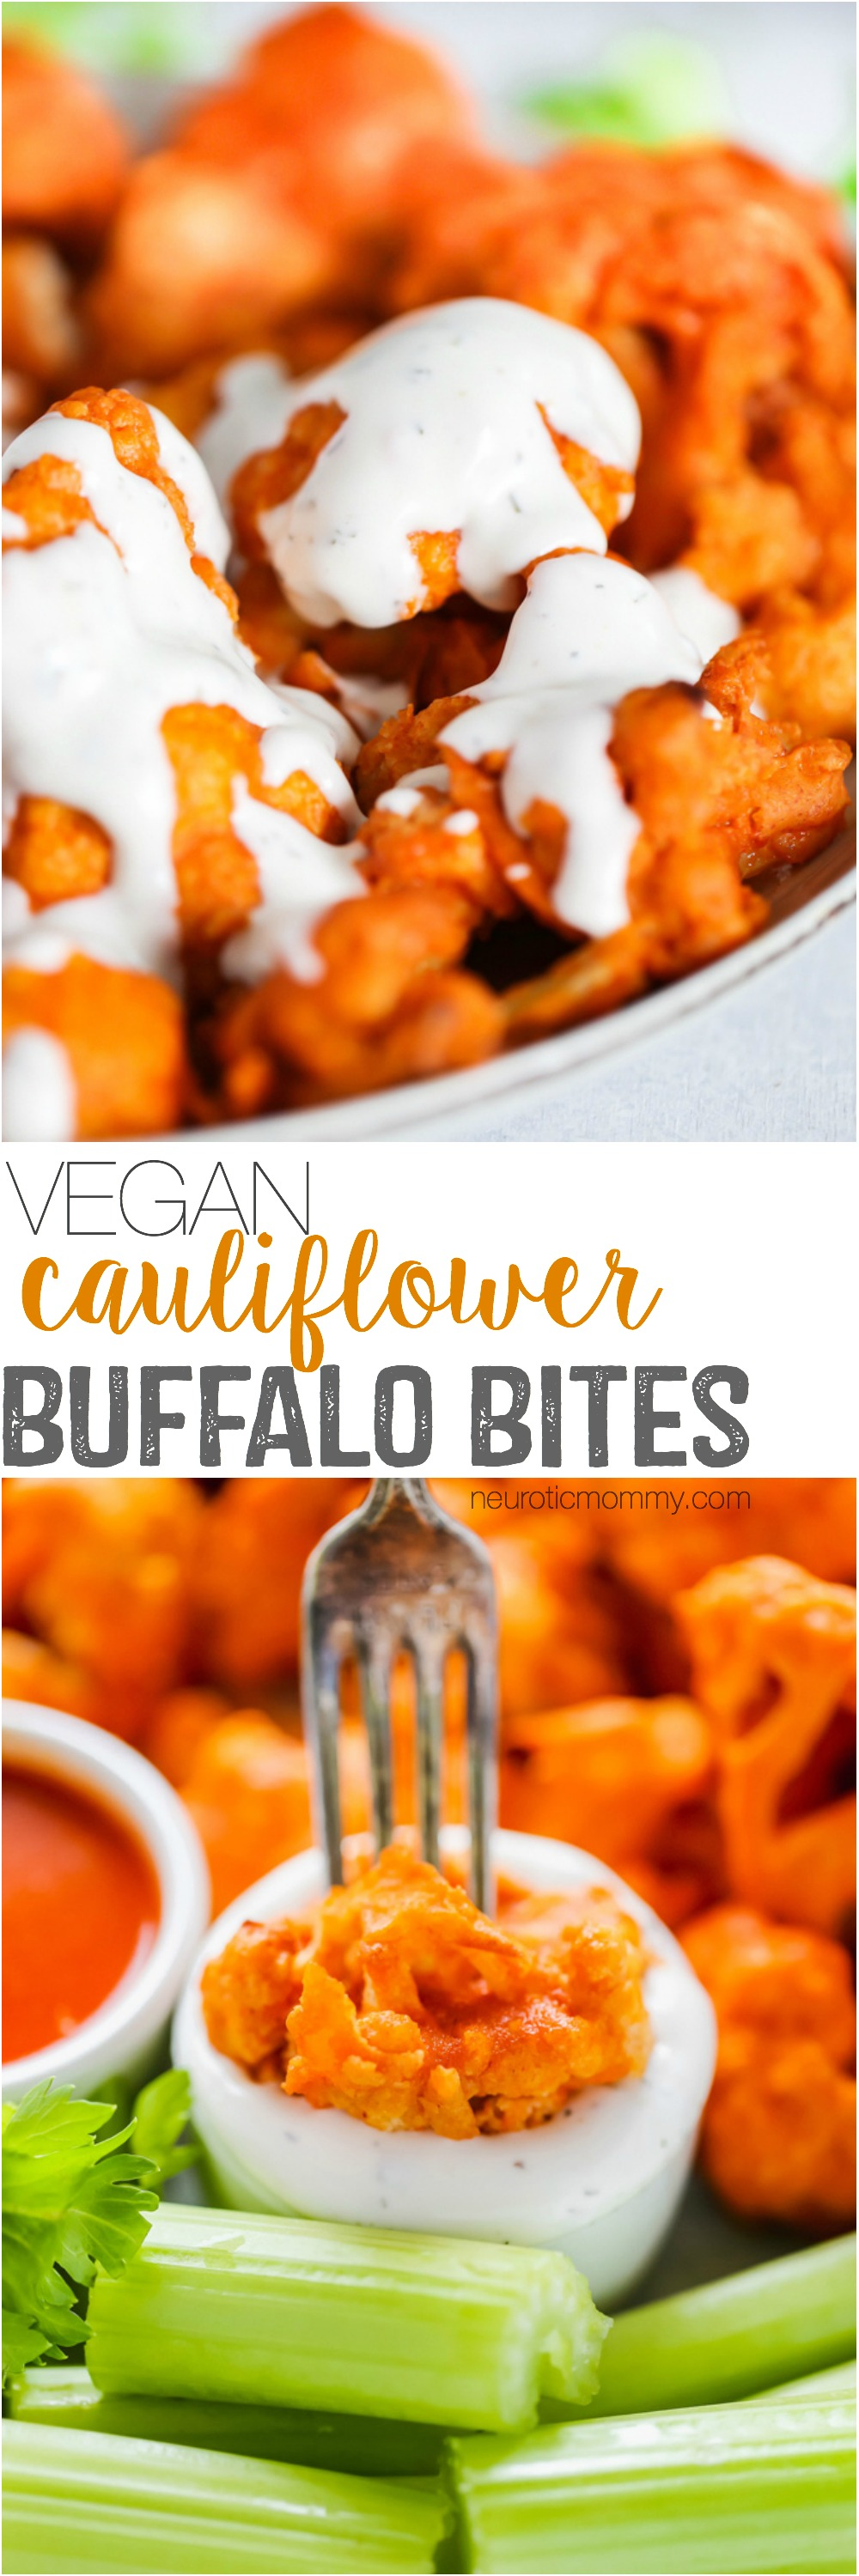 Vegan Cauliflower Buffalo Bites - Baked to crunchy perfection and smothered in vegan blue cheese, this is ready and set to go in under 30 minutes. NeuroticMommy.com #vegan #vegansnacks #buffalocauliflower